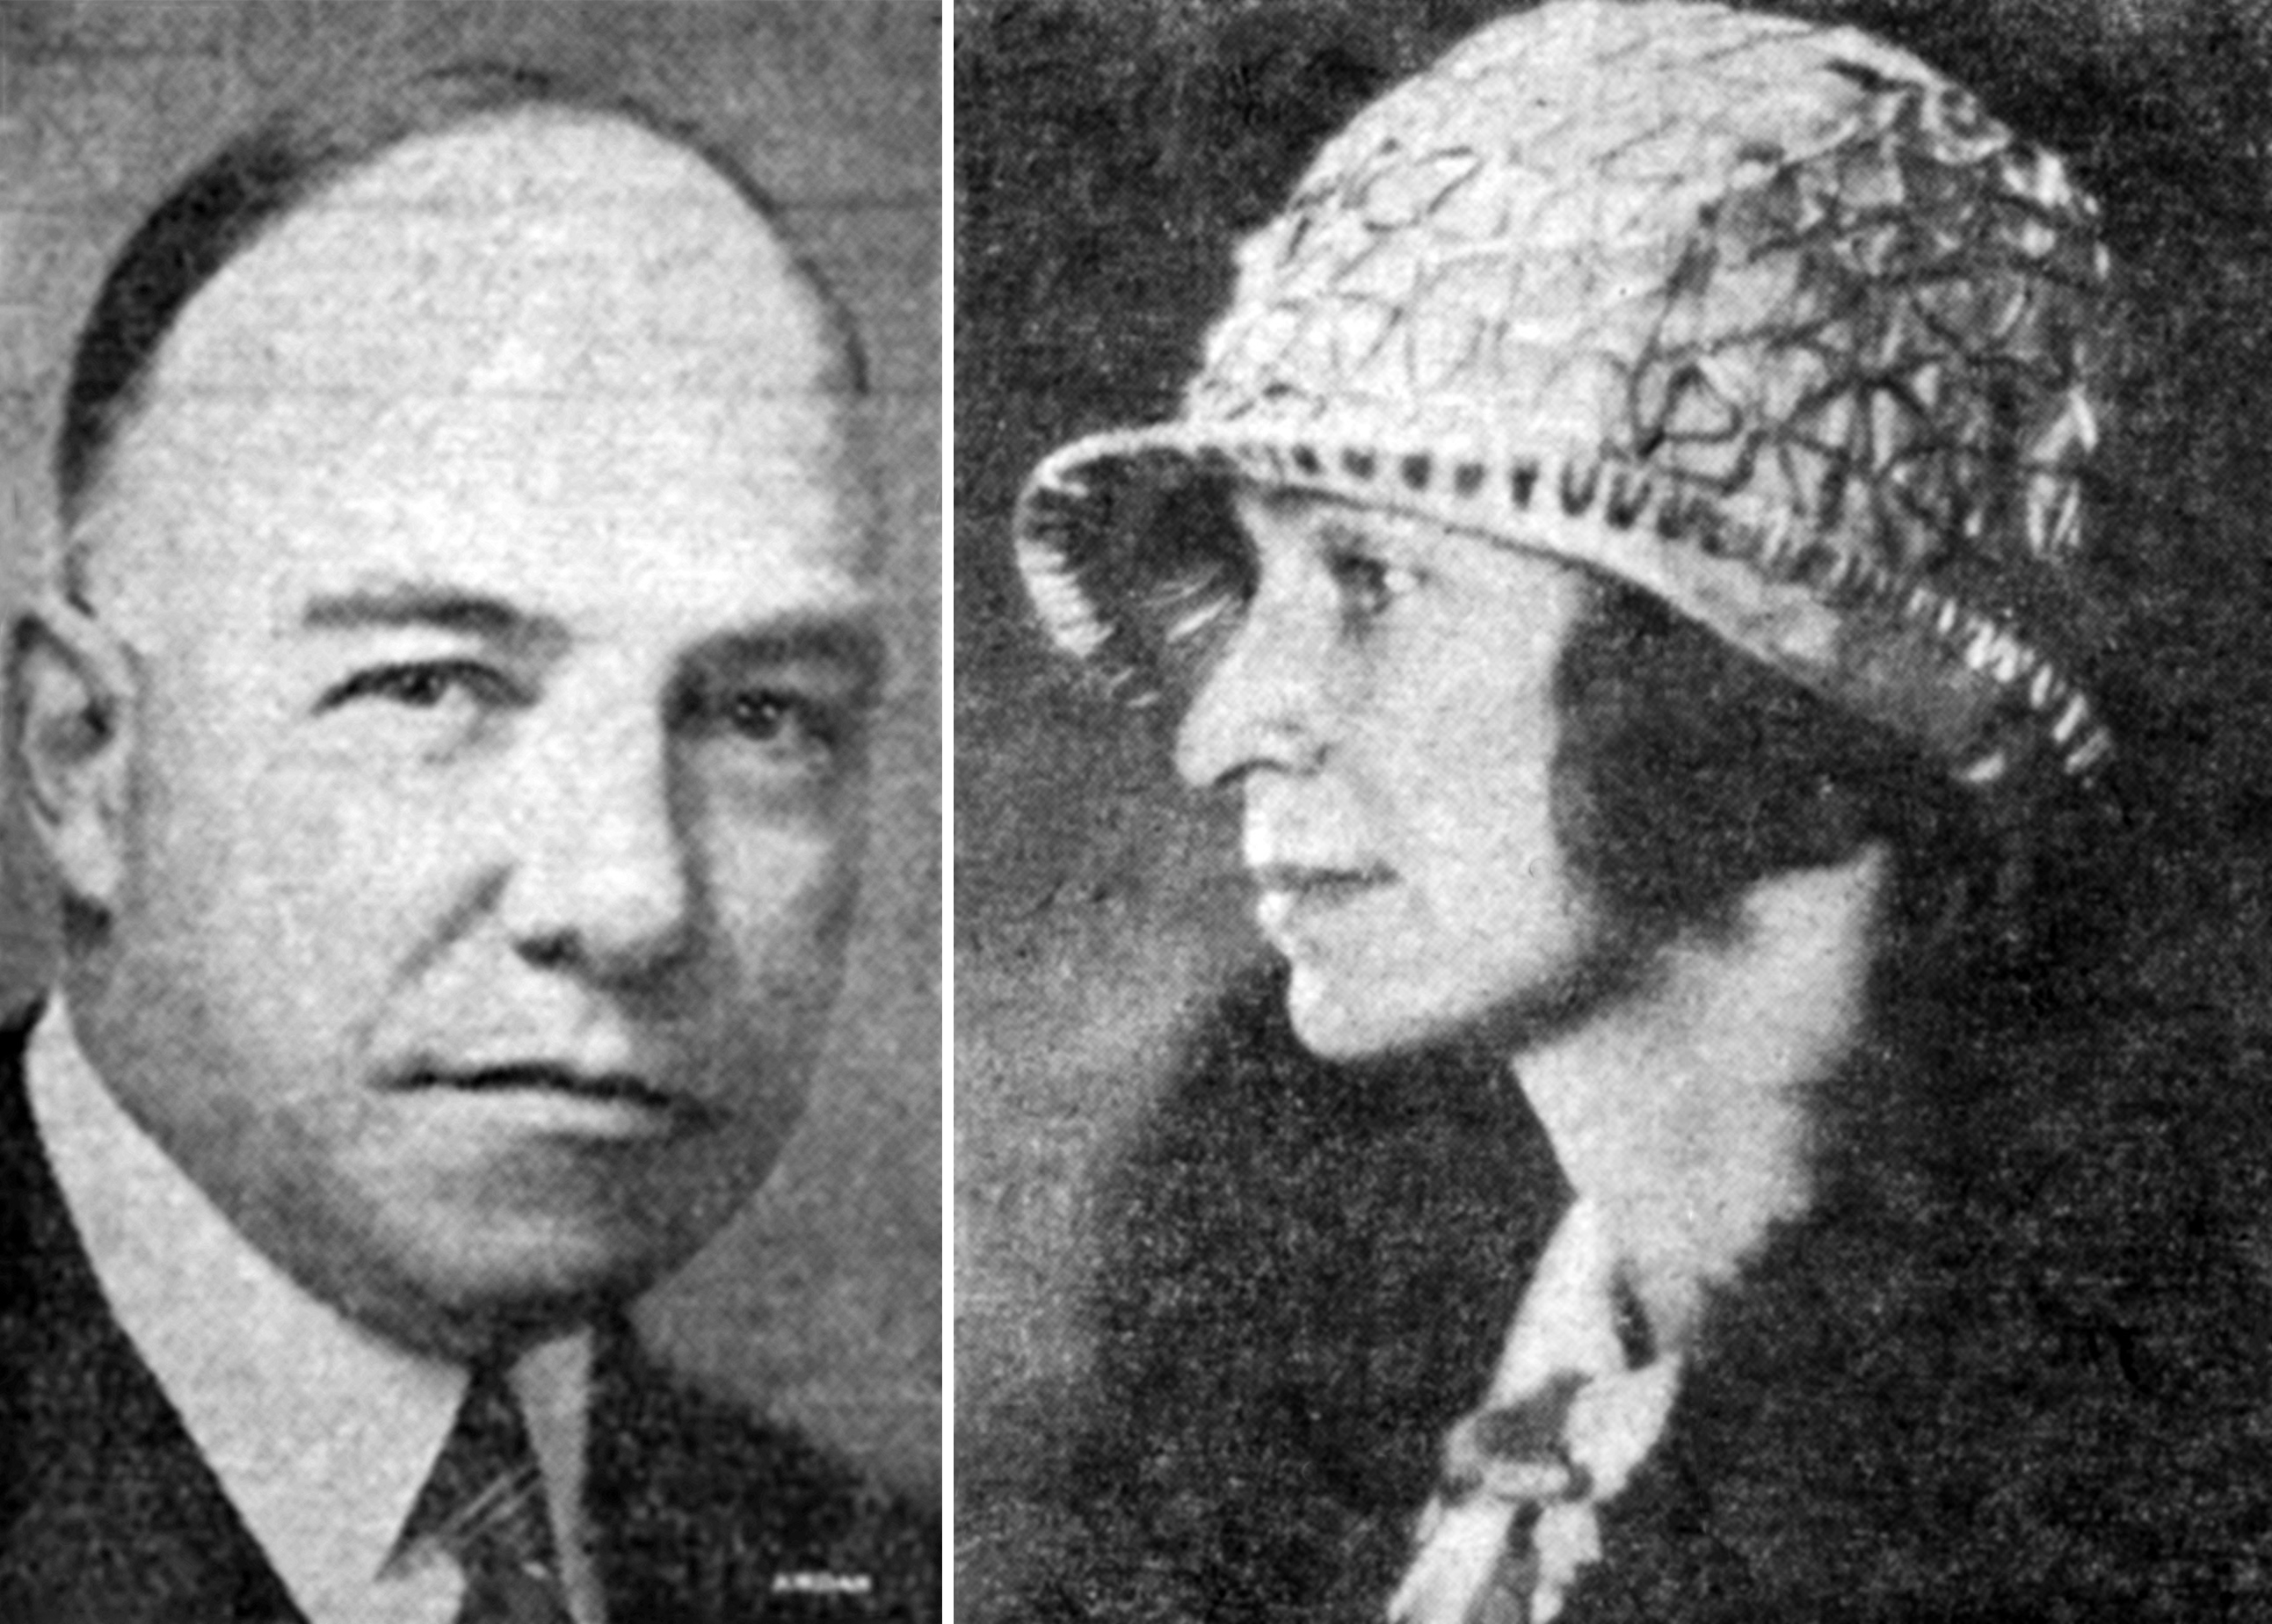 Dr. Harold Vincent Bickmore and Miss Laura Amanda Goding lived at 123 Congress St. after they were wed in 1926.